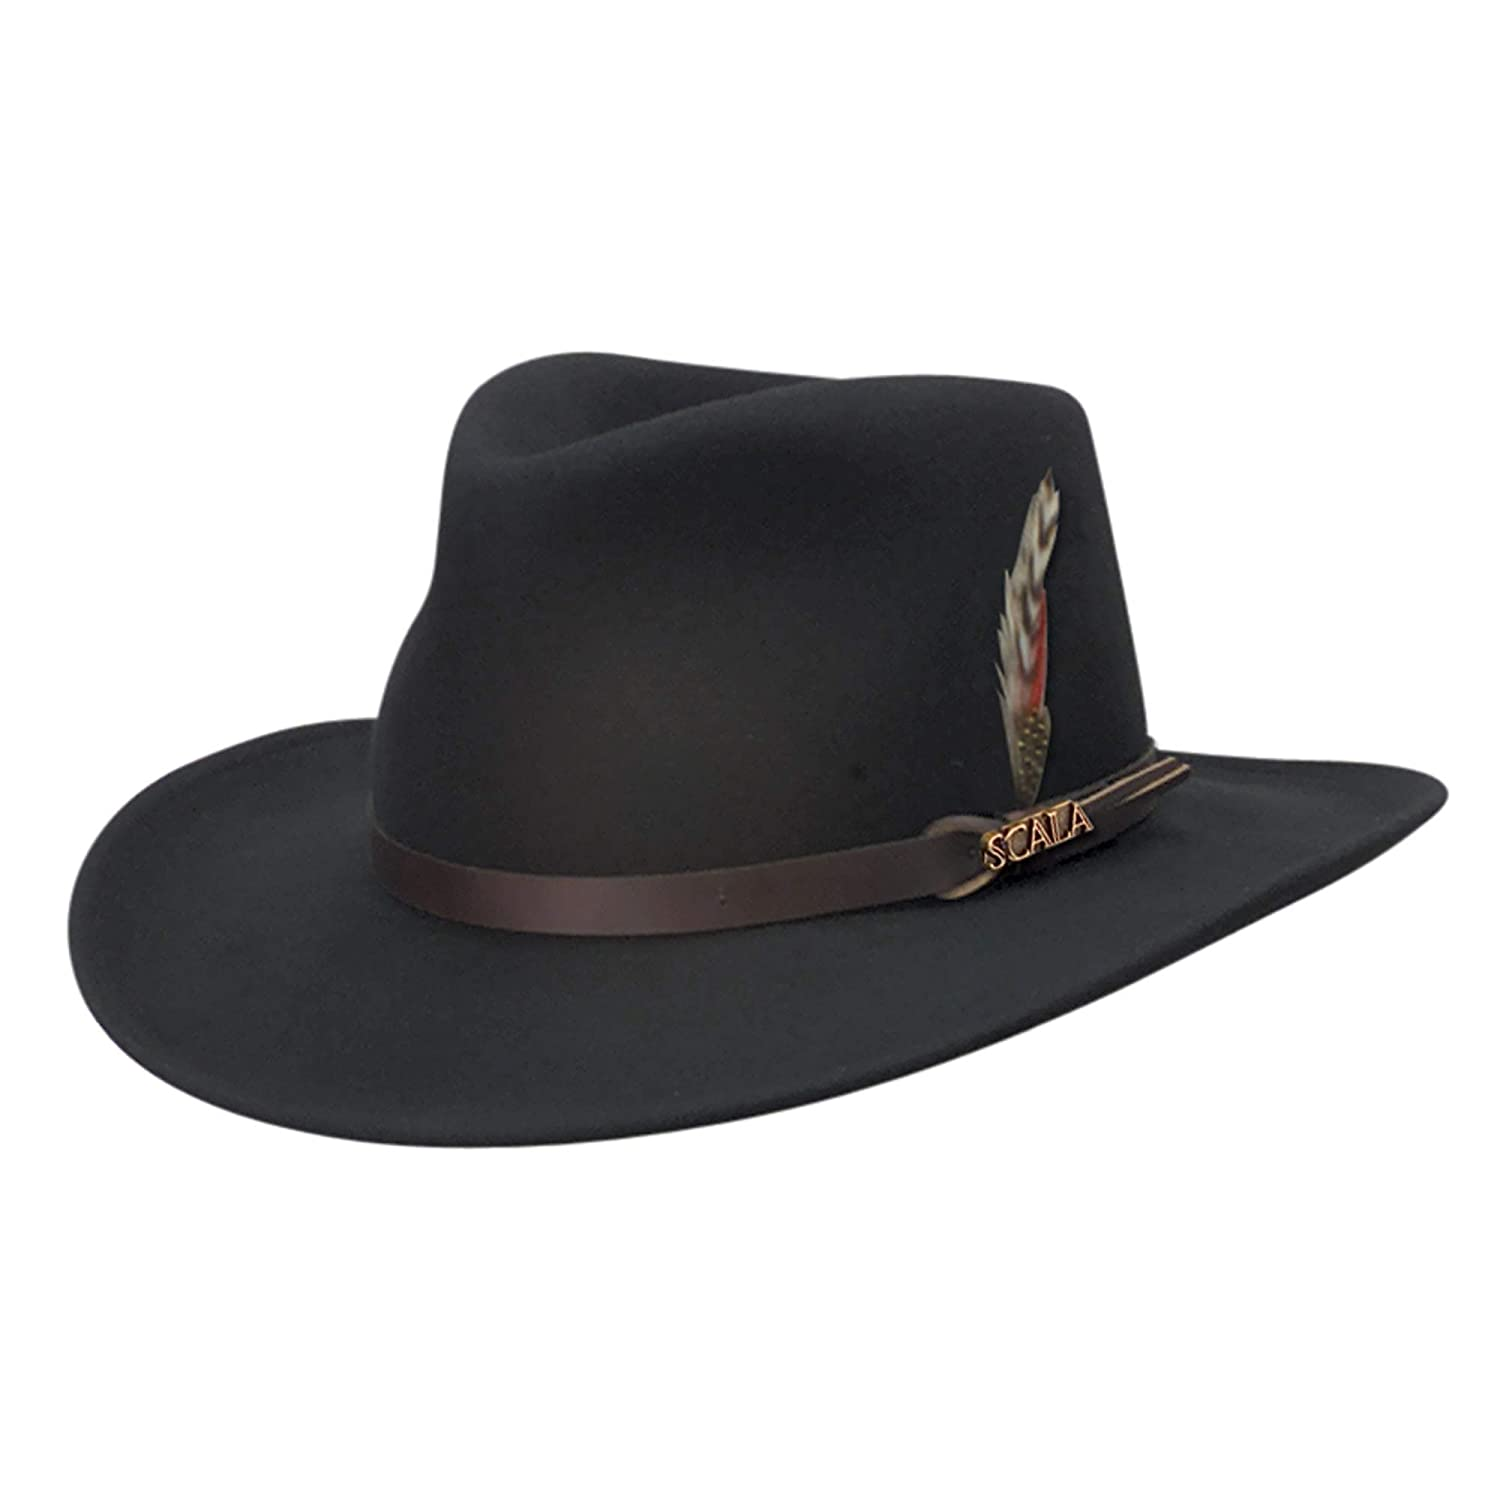 9a3b15895e10c Scala Classico Men s Crushable Felt Outback Hat at Amazon Men s Clothing  store  Cowboy Hats